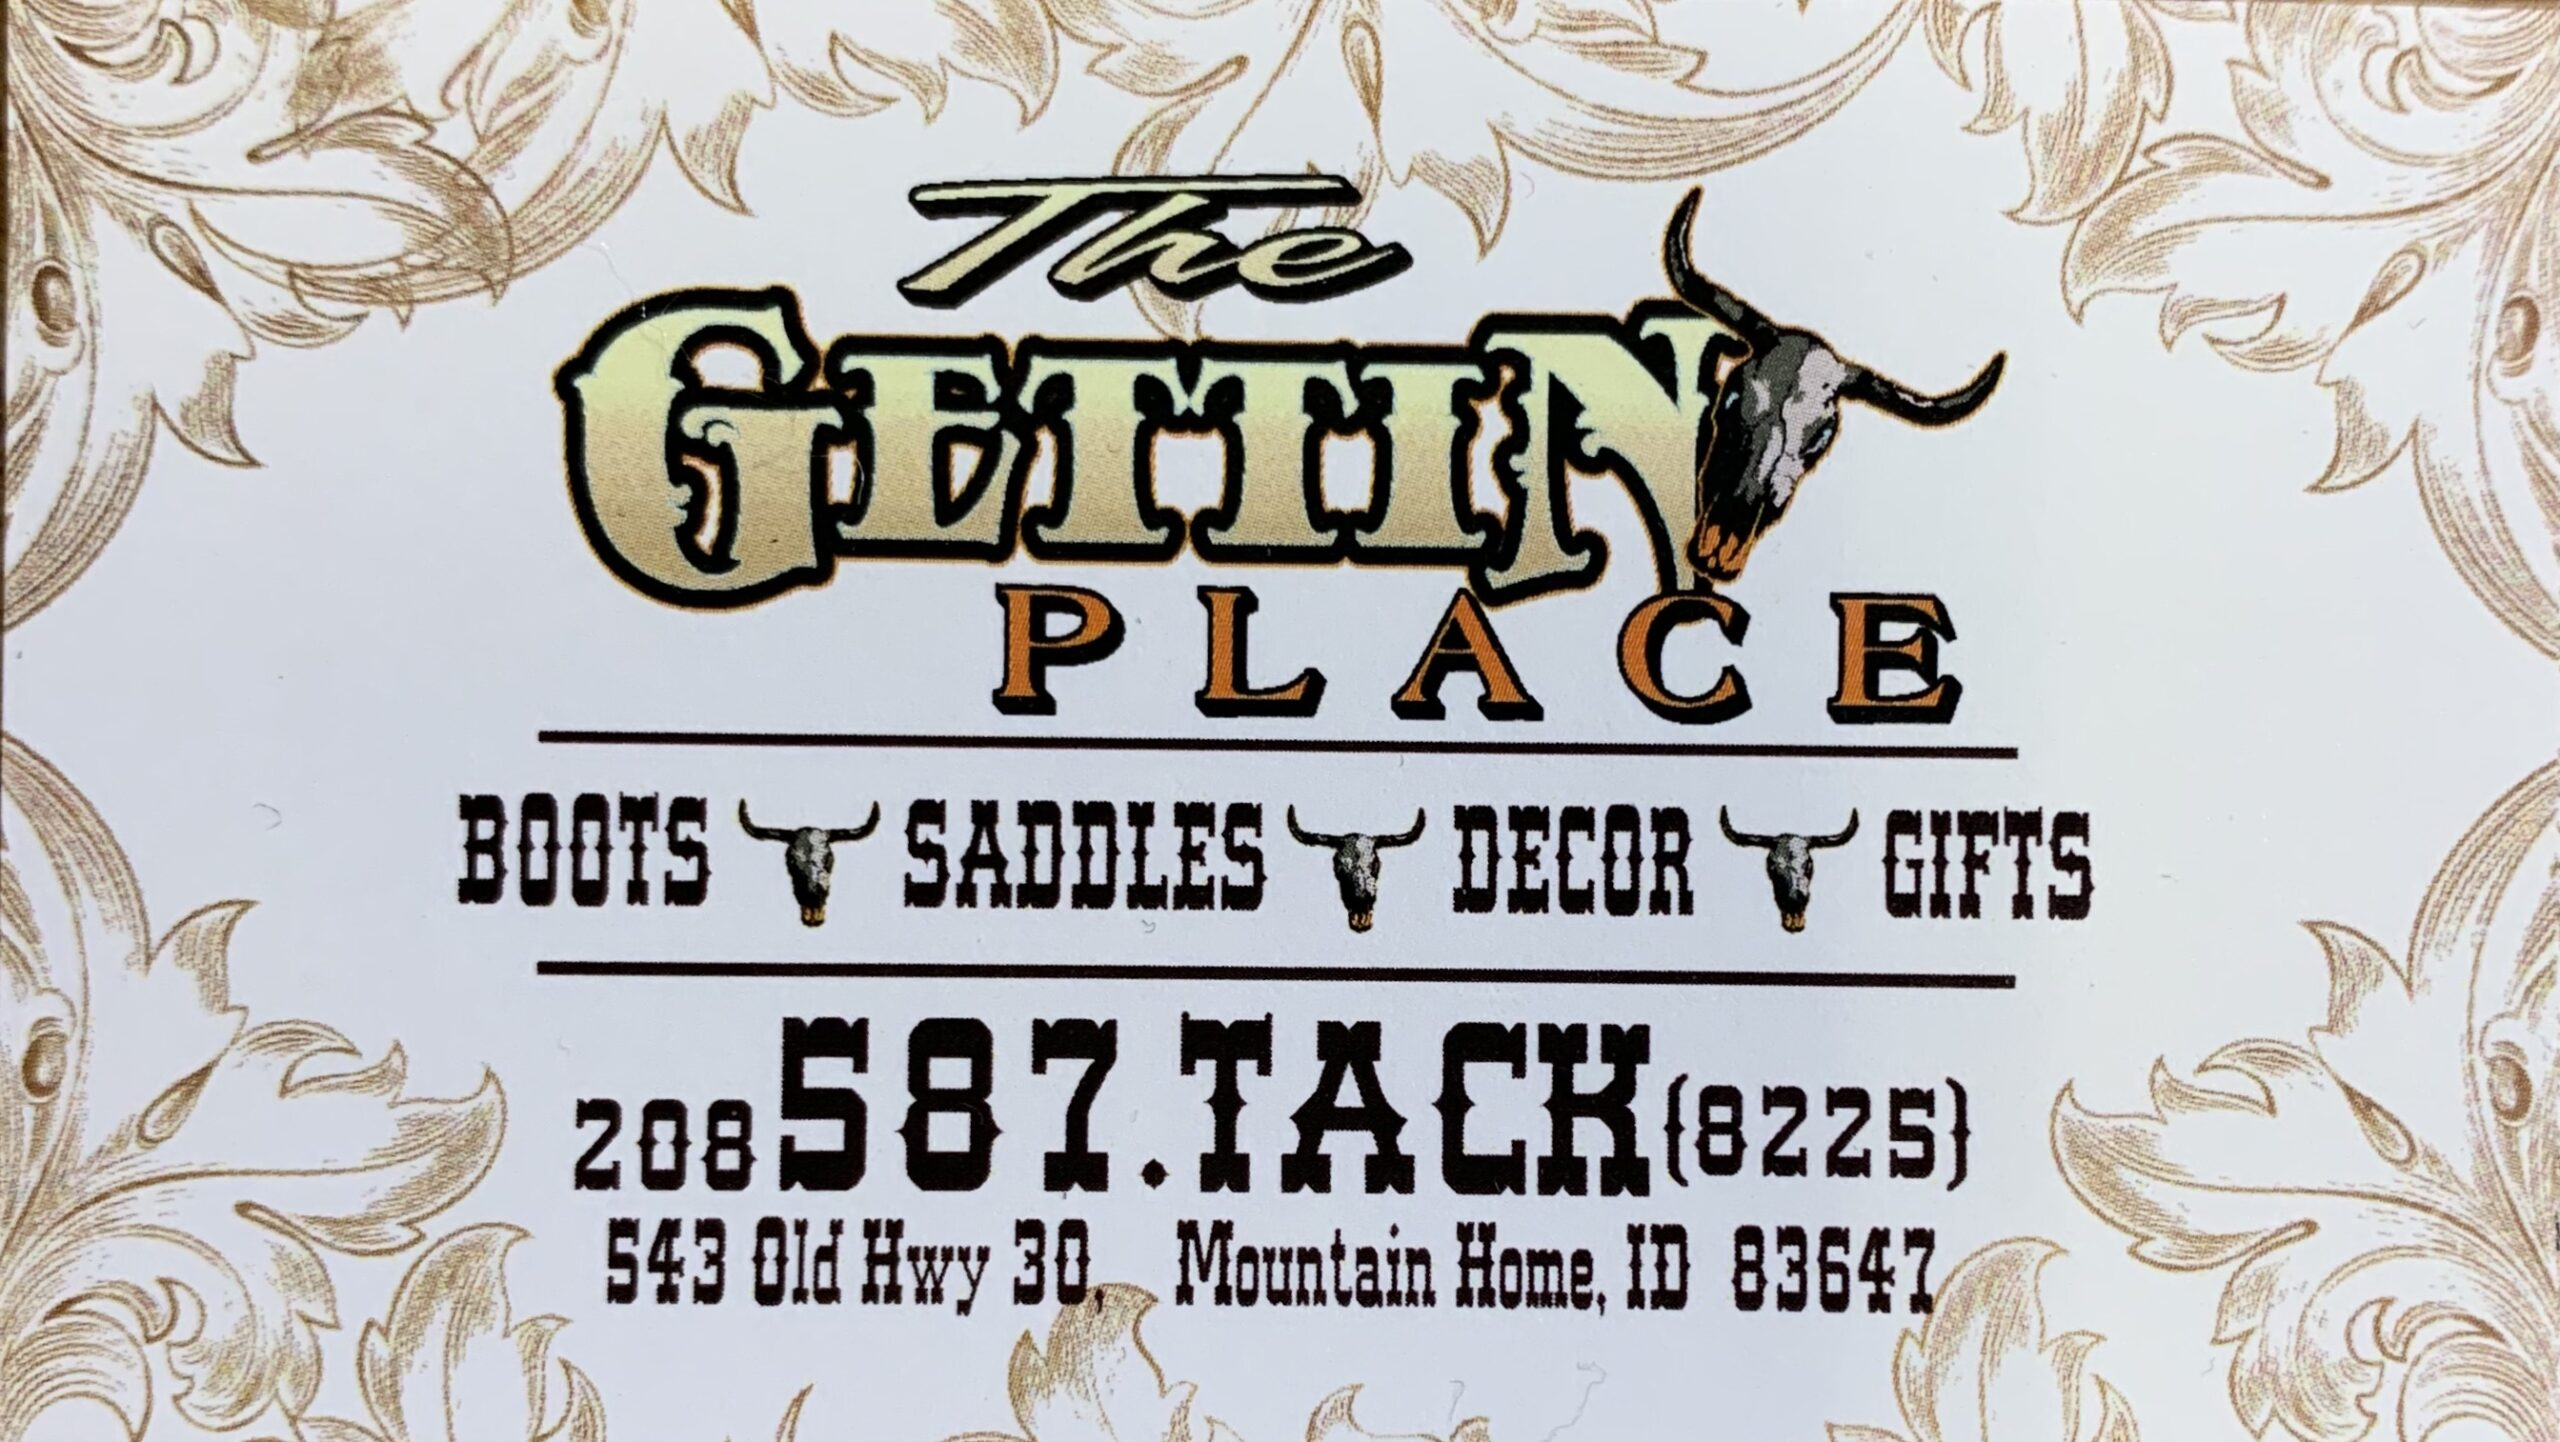 The Gettin Place business card